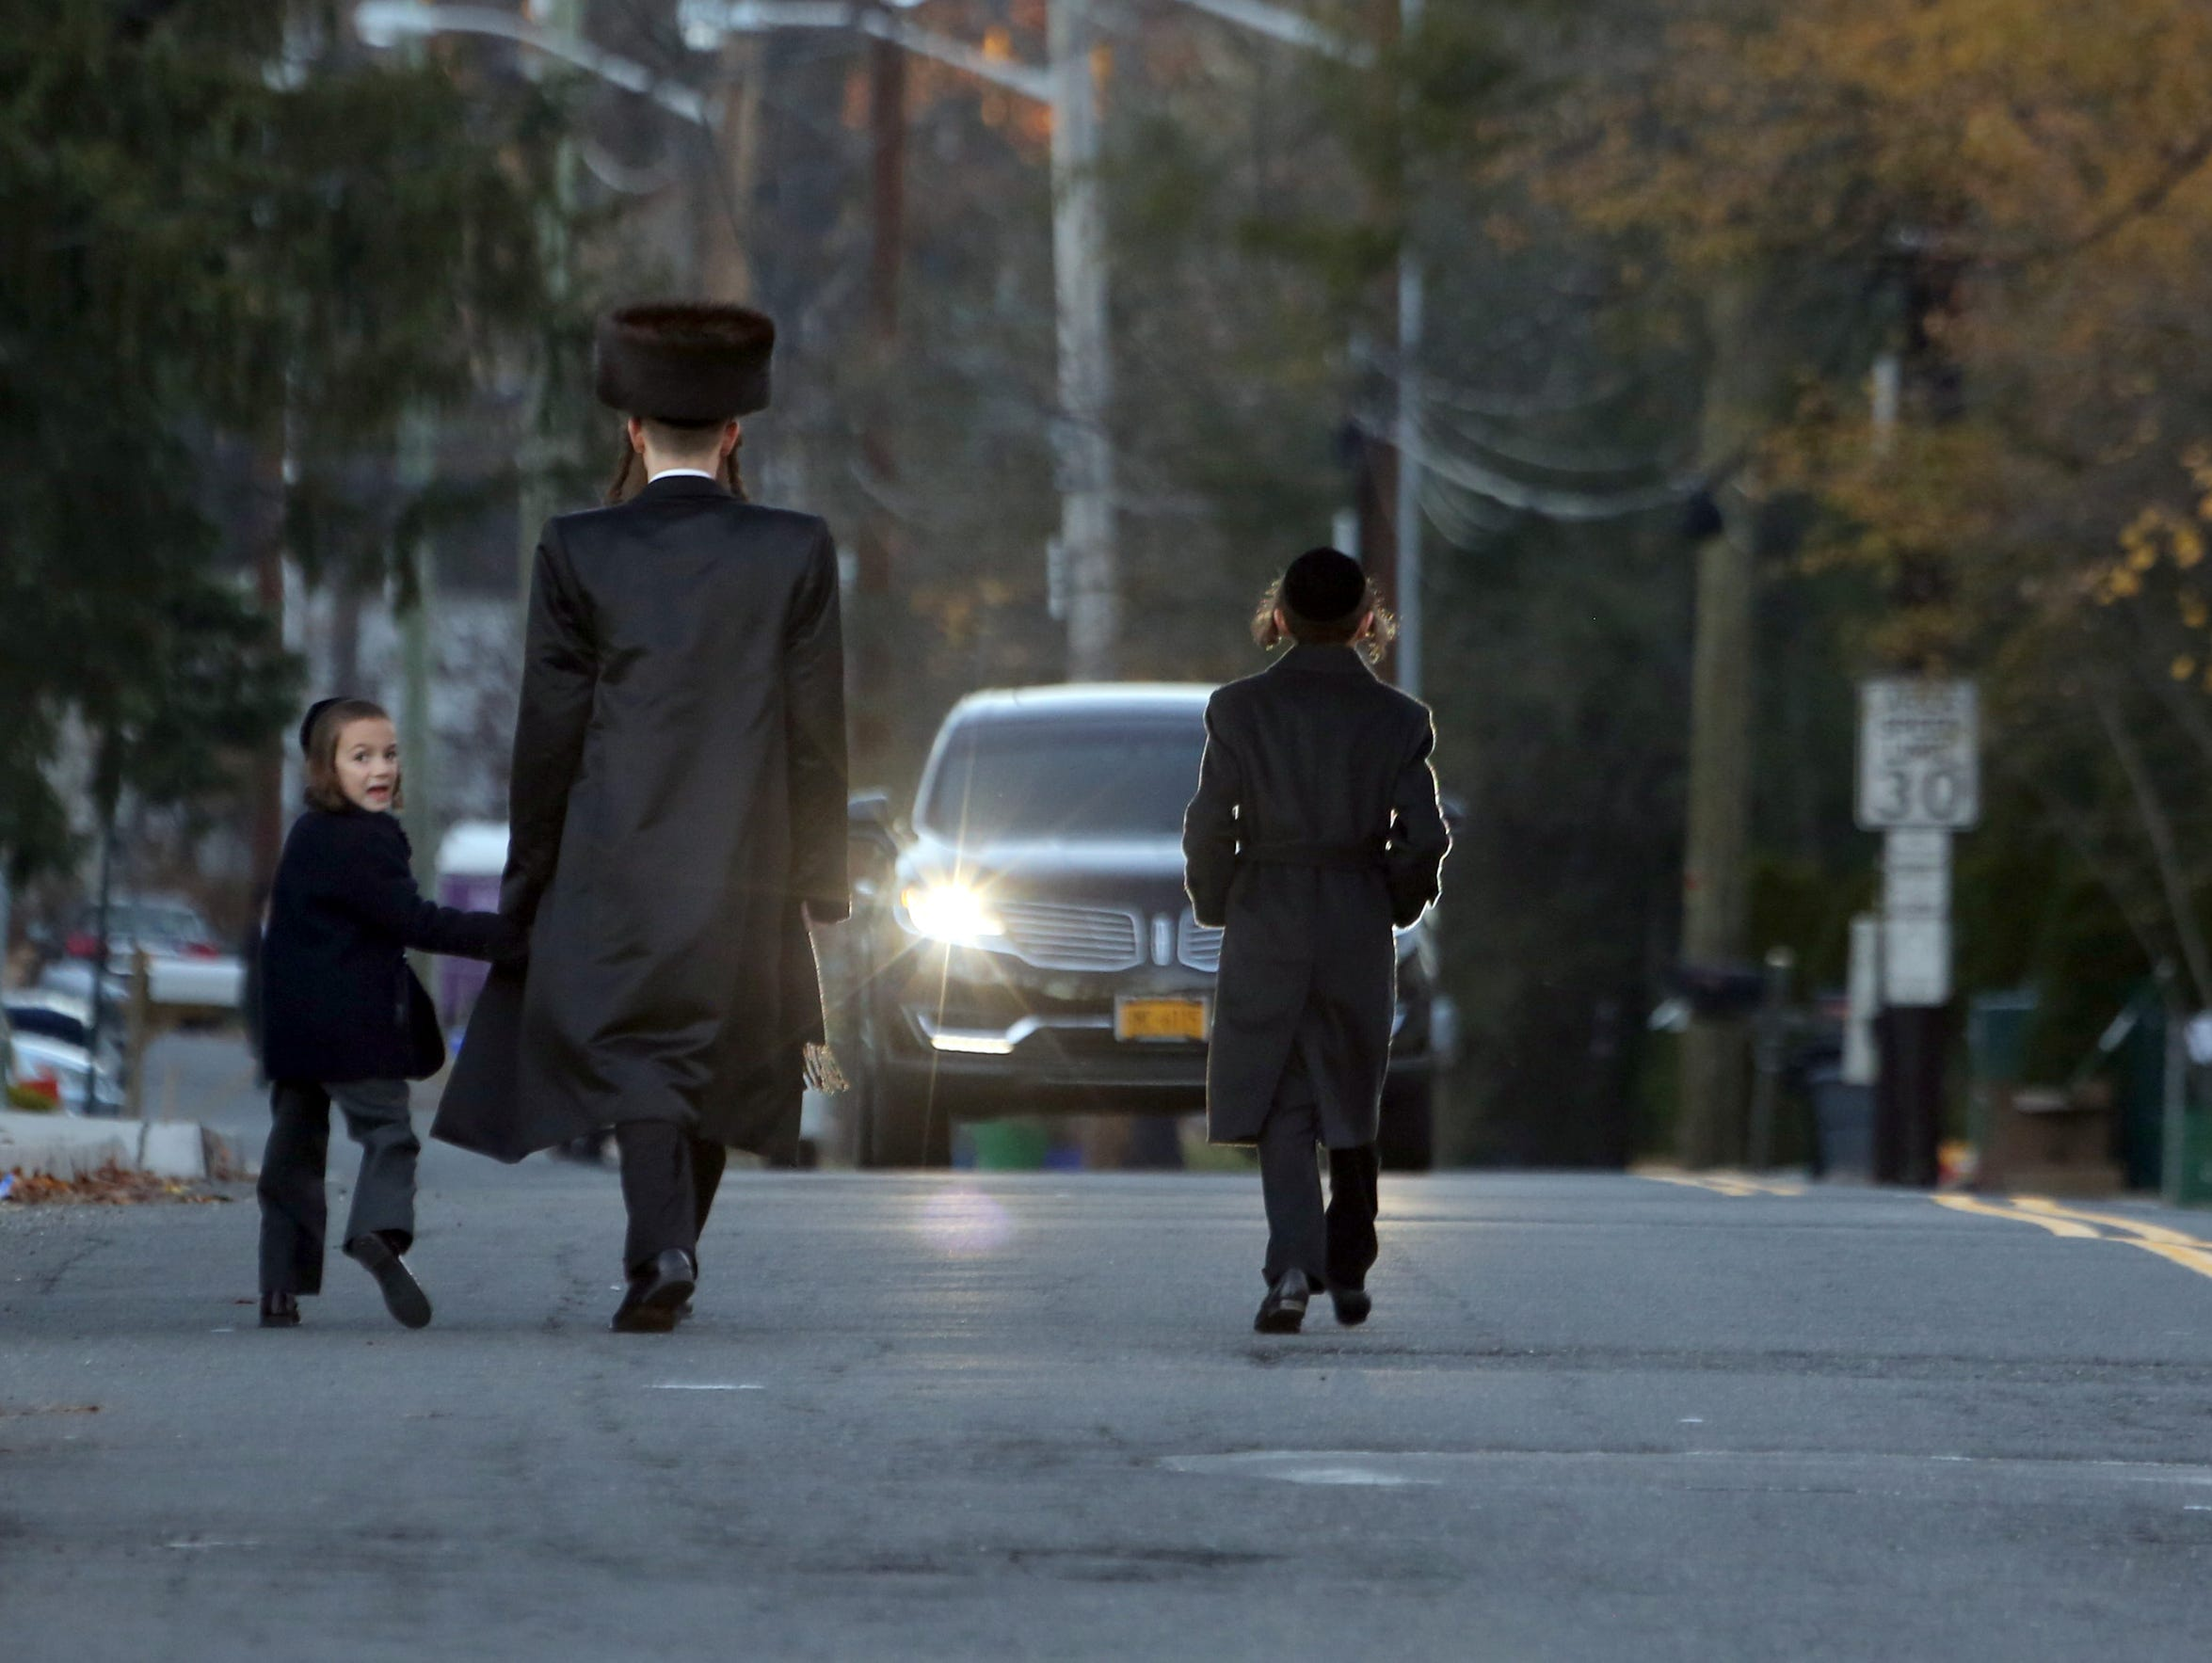 A man walks with two young boys on Herrick Avenue in